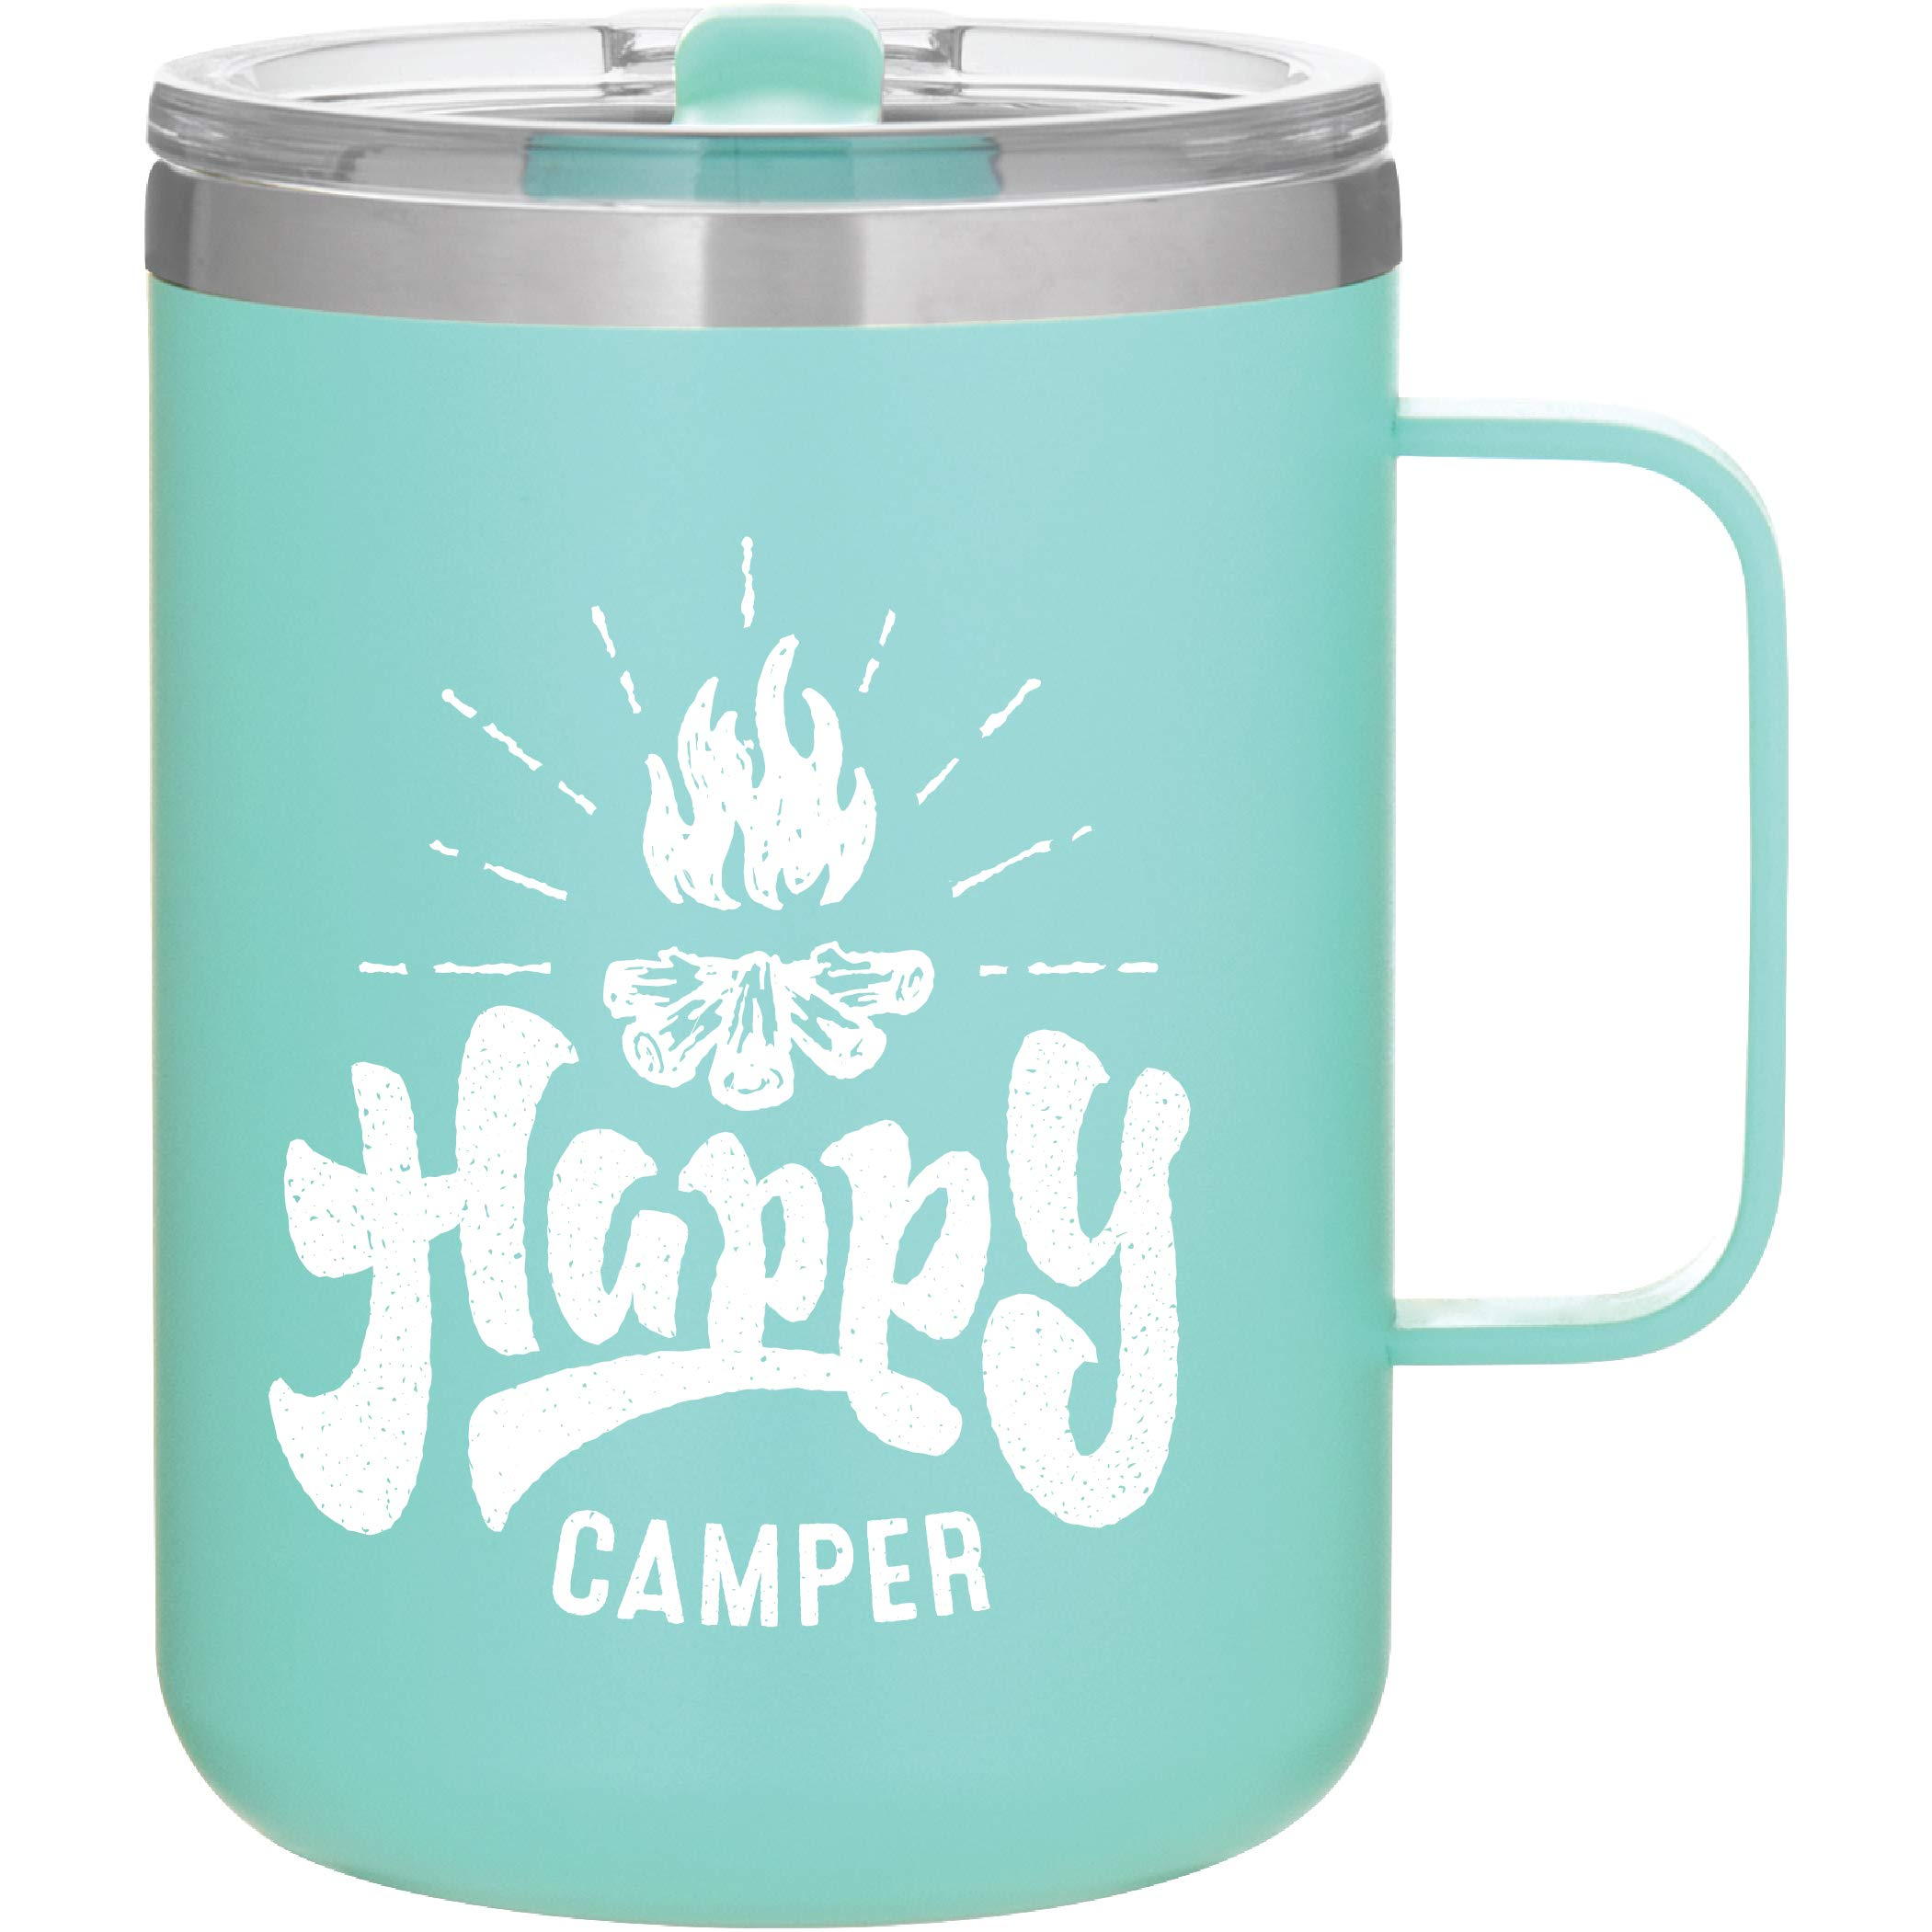 Happy Camper - Camping Gifts - 16oz Vacuum Insulated Travel Mug with Lid by MugHeads (Matte Mint)